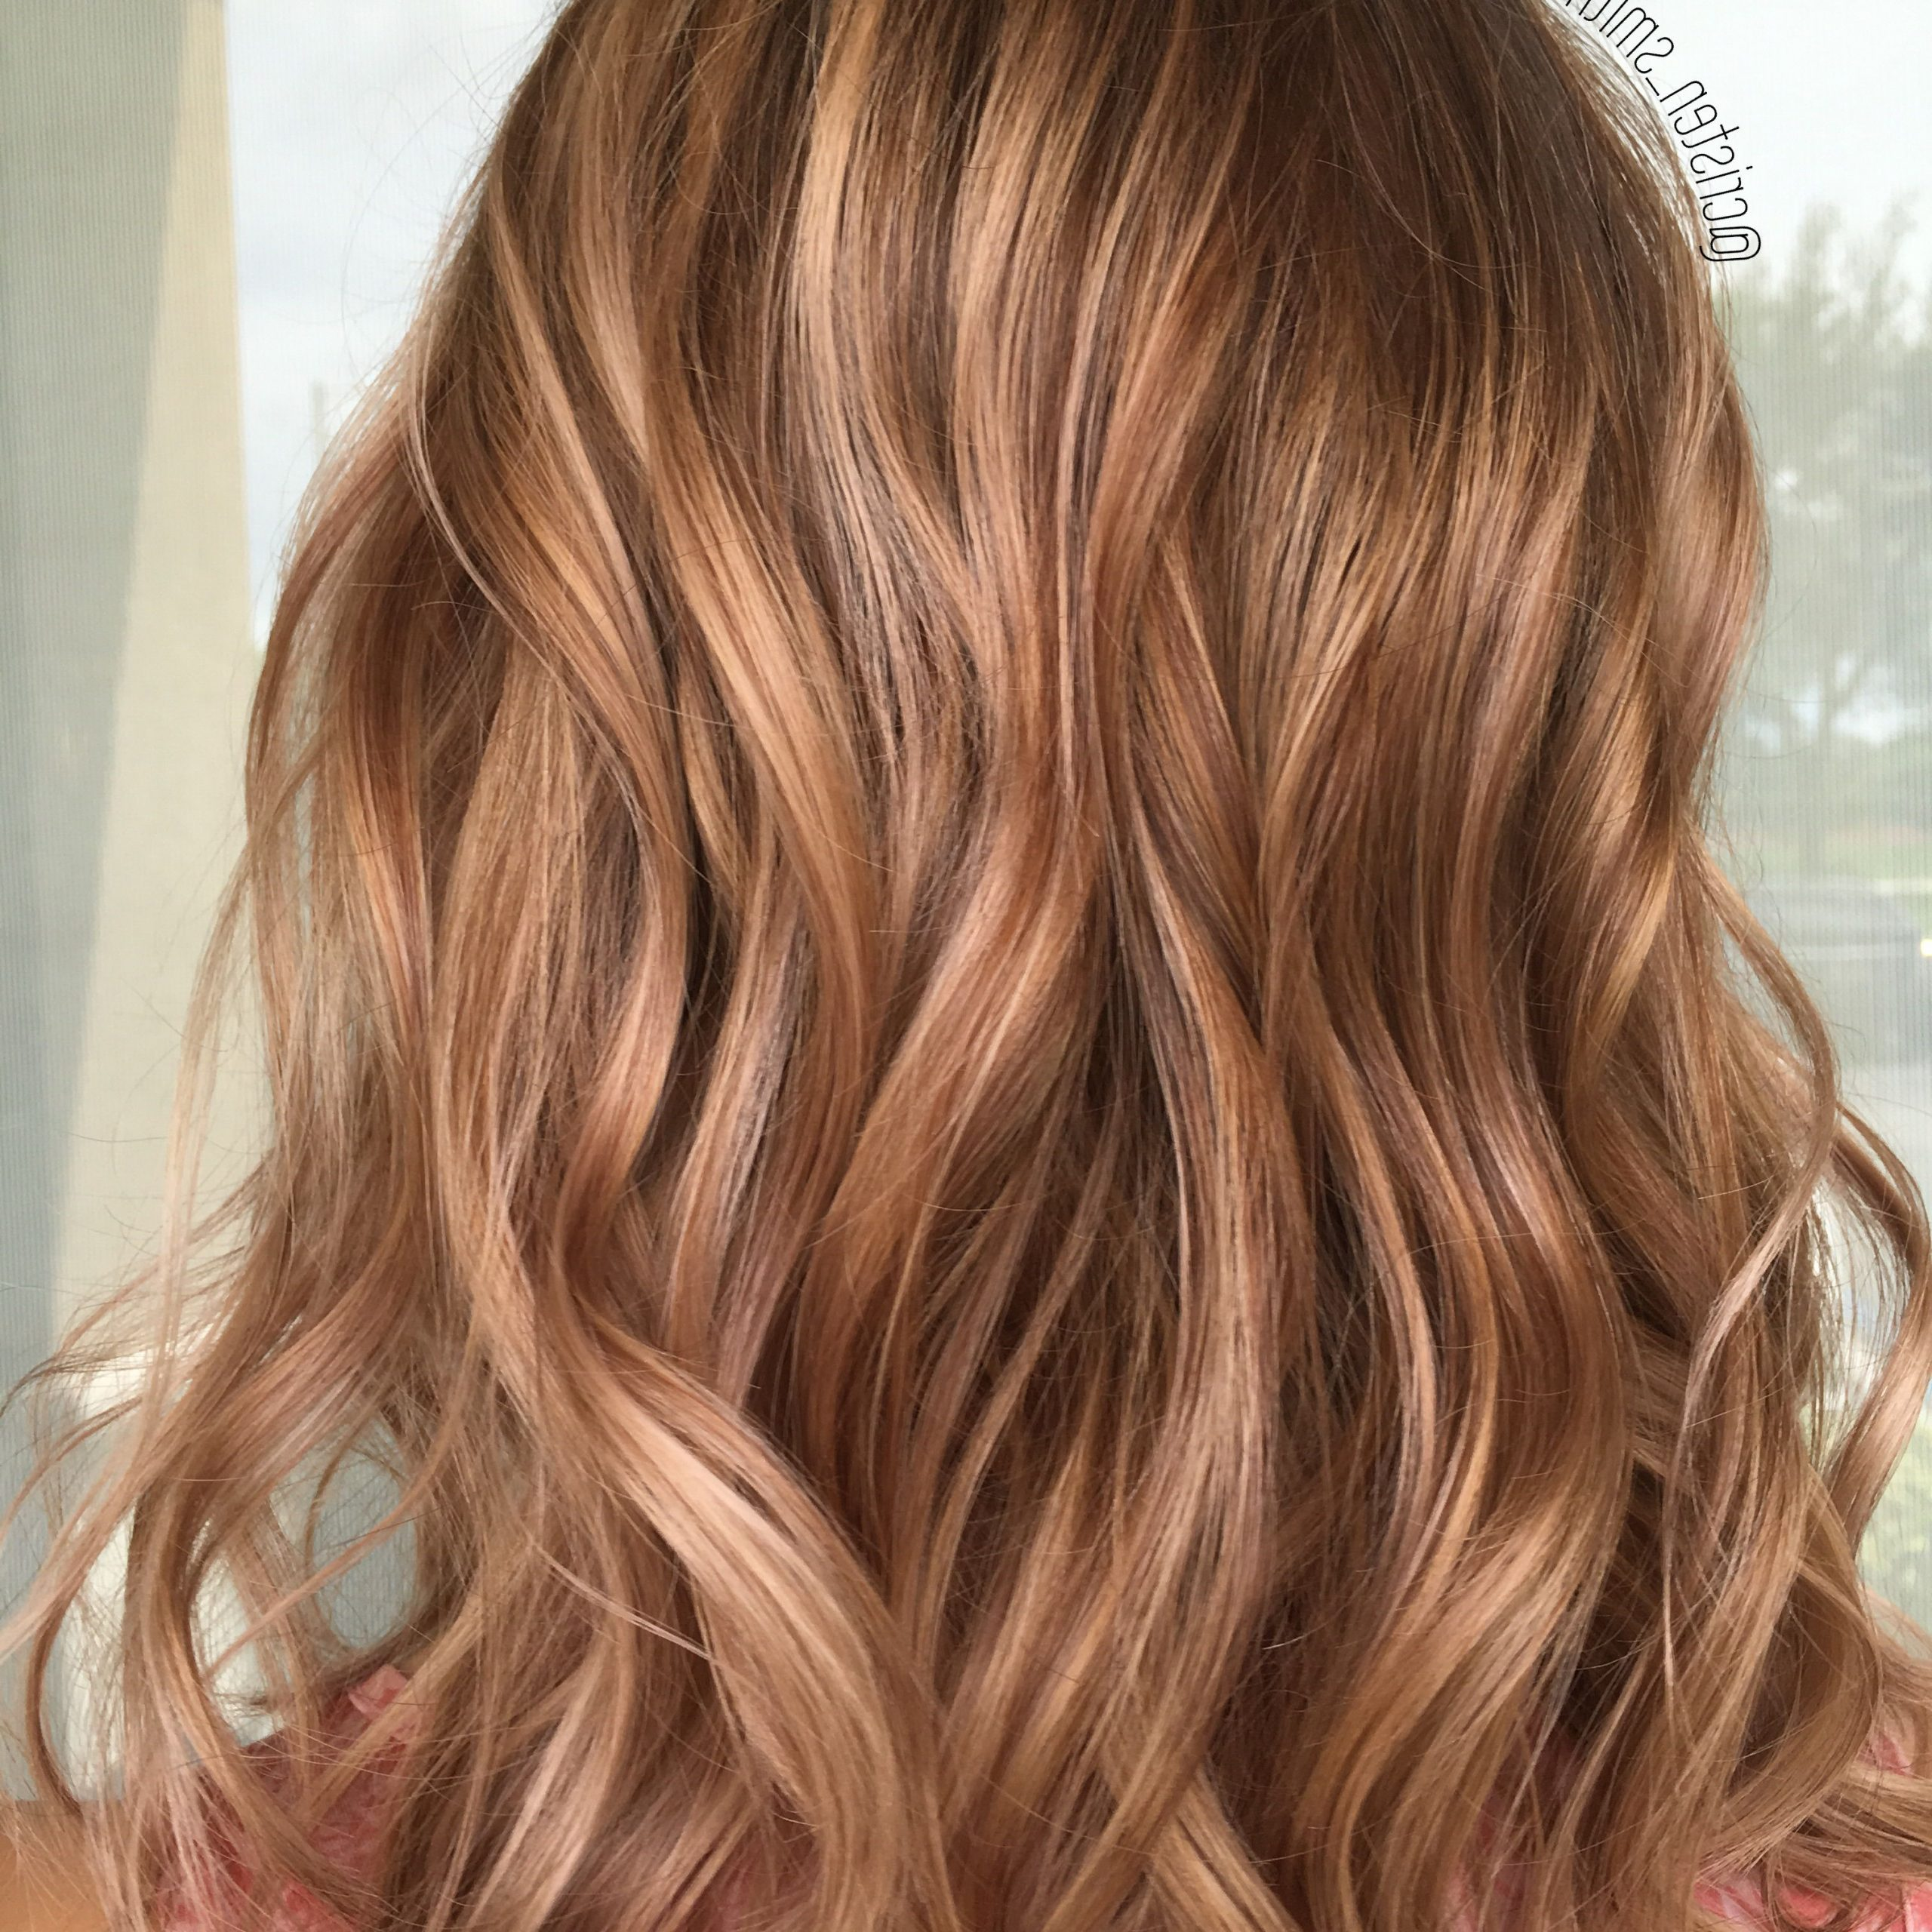 Warm Dimensional #blonde #hair #balayage #beauty #curls Pertaining To Current Curls Hairstyles With Honey Blonde Balayage (View 13 of 20)